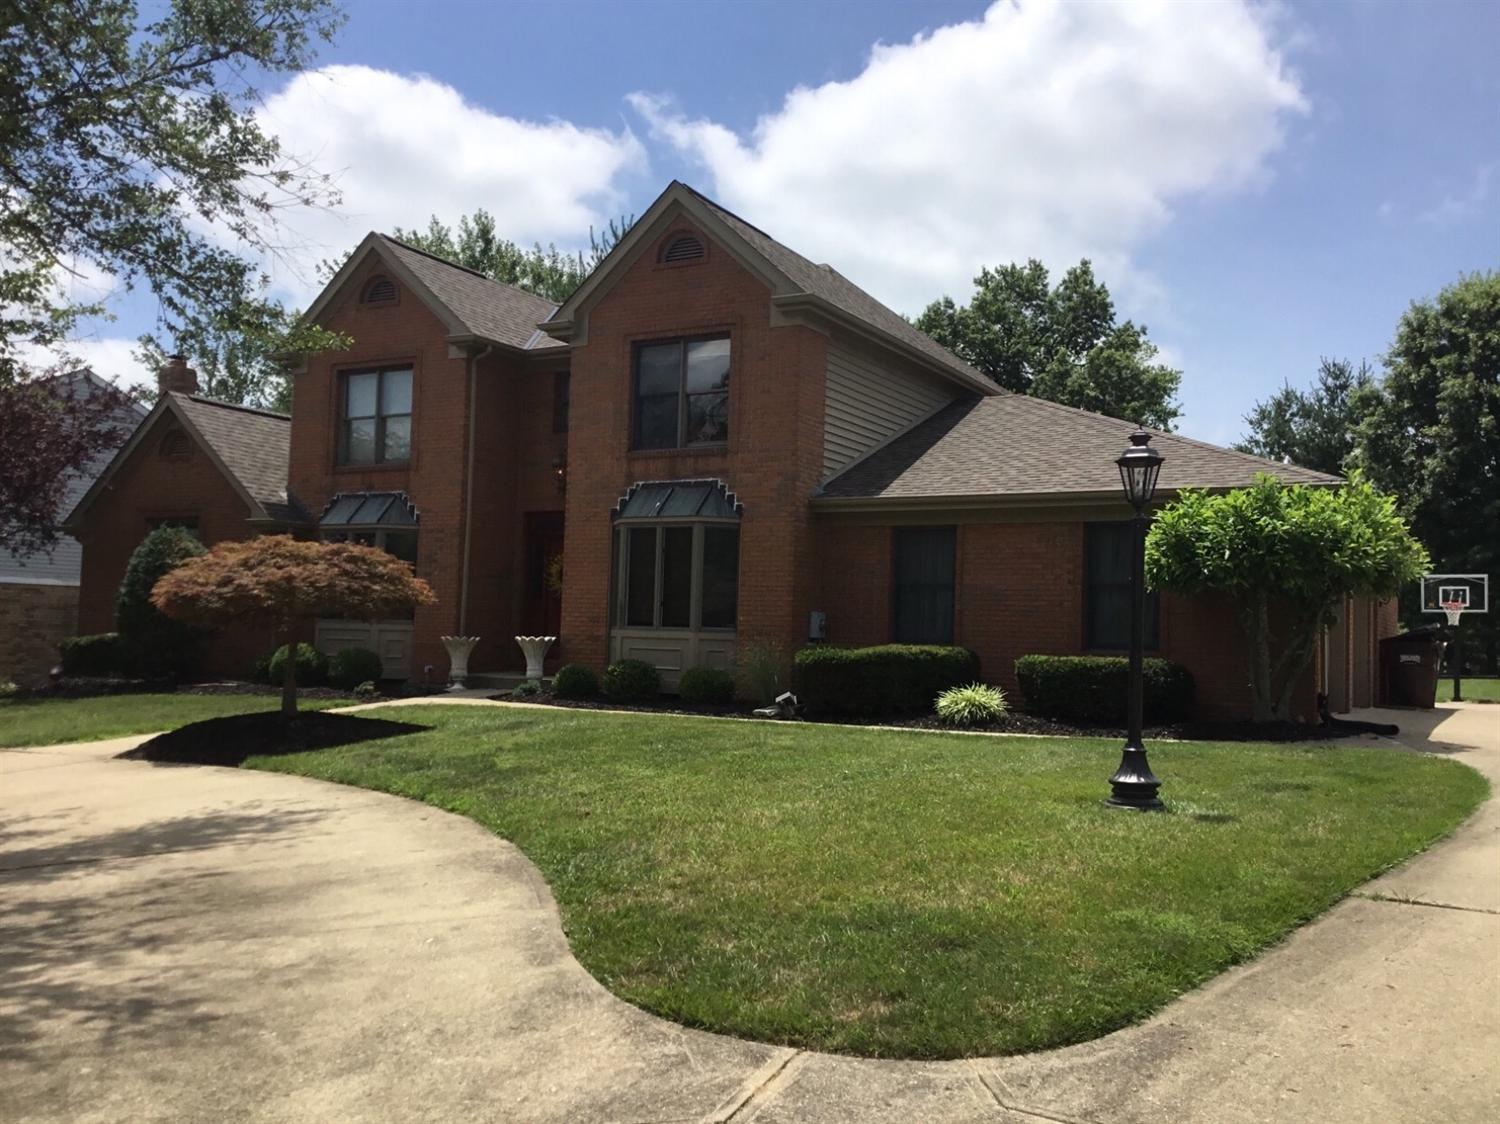 Photo 1 for 121 Woodspoint Dr Crestview Hills, KY 41017